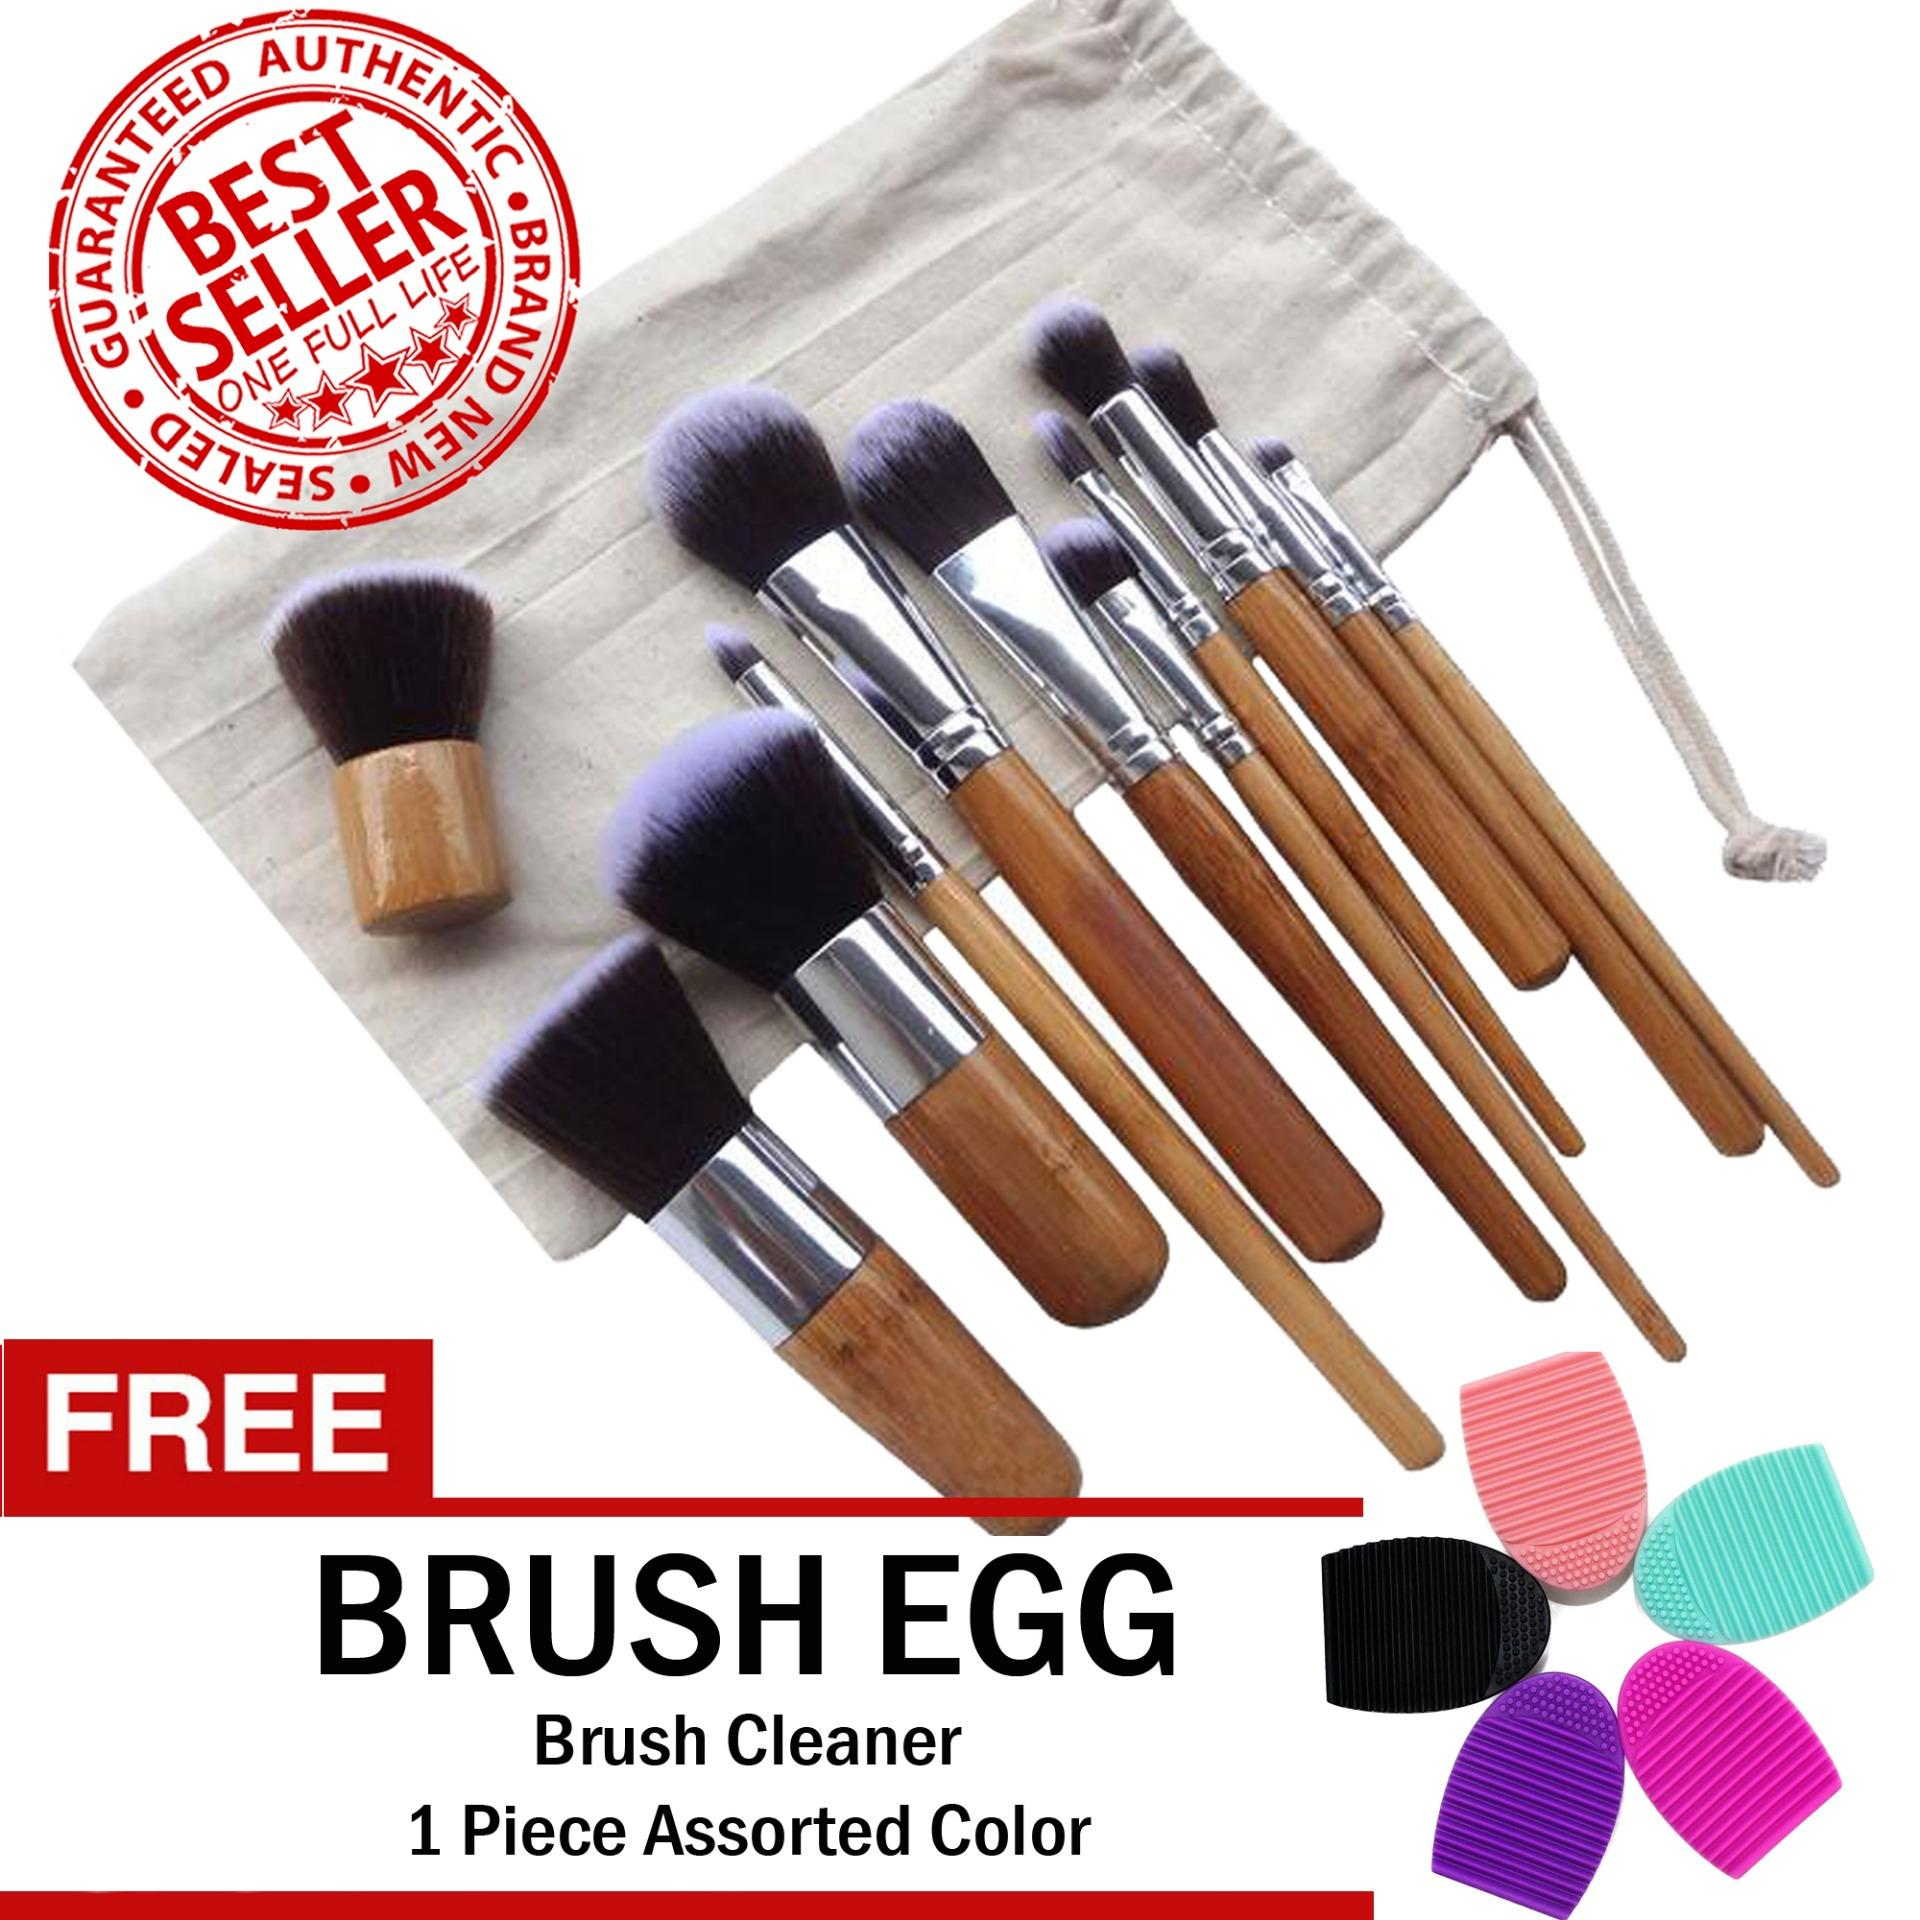 Professional Bamboo Make up Brush Set 11 Pieces FREE Brush Egg Brush Cleaner Philippines